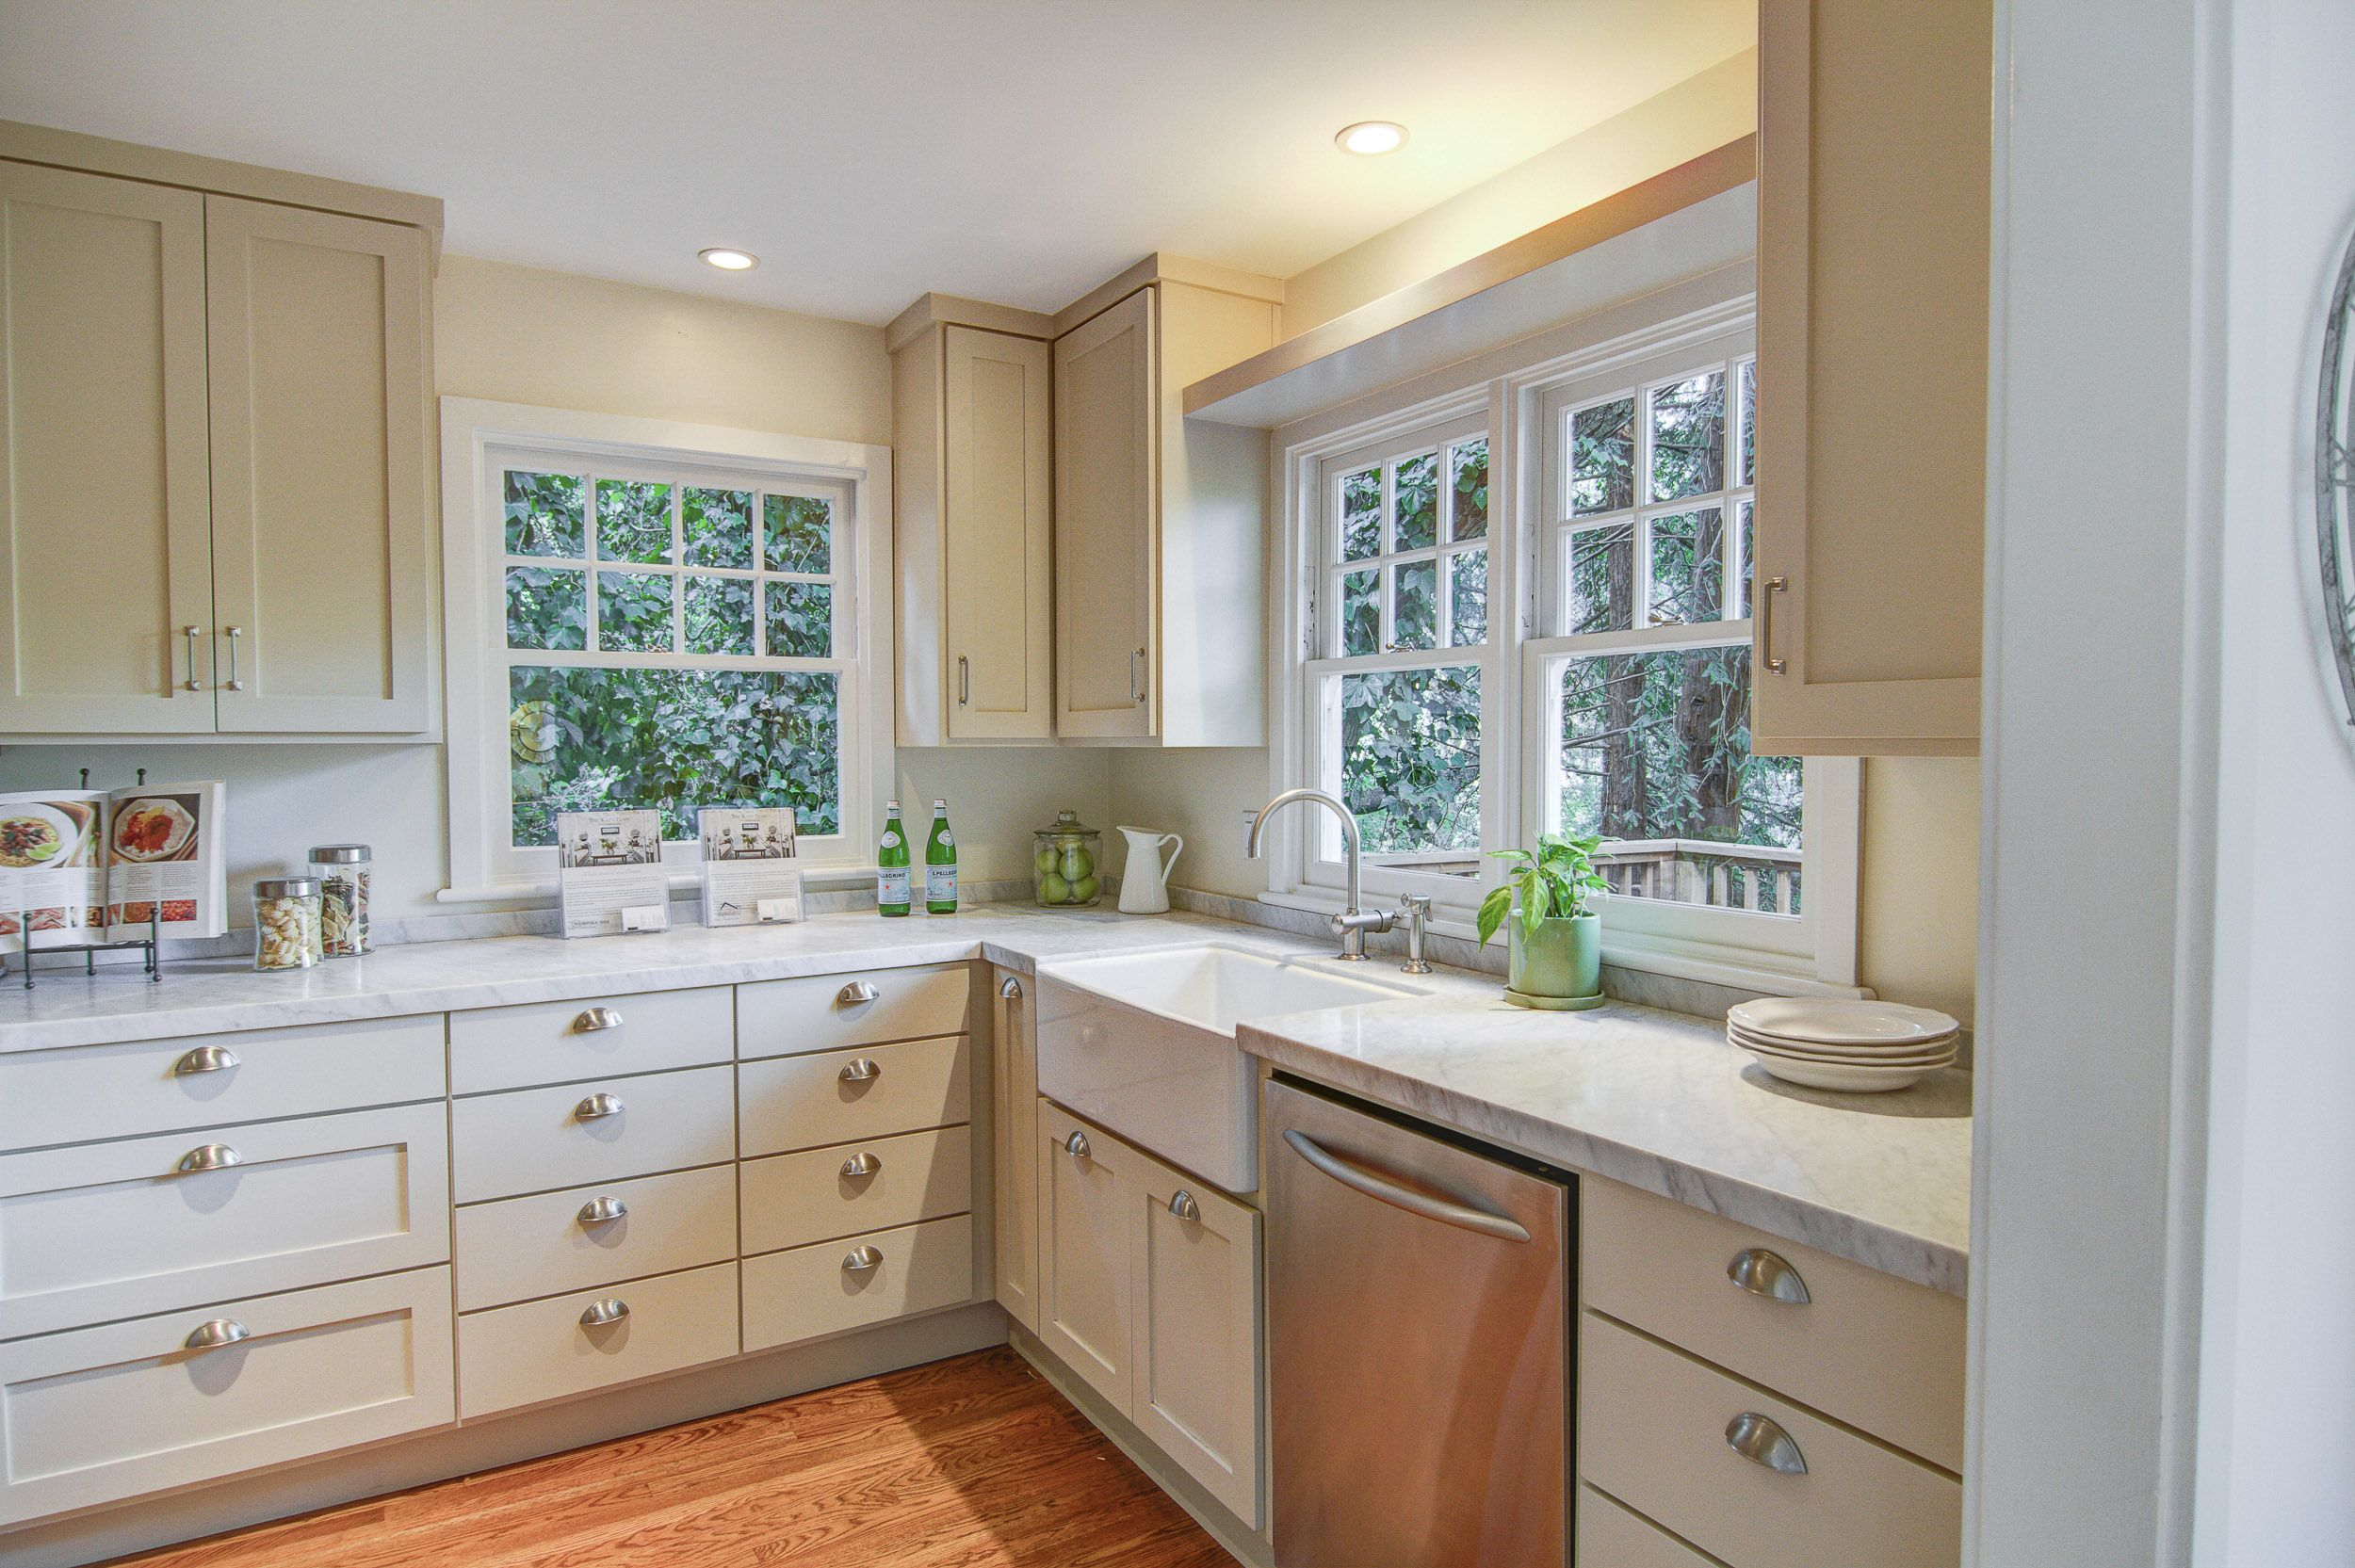 The Kitchen 1 Paint Cabinets Walls A Neutral Color 2 Change Out Hardware 3 Declutter The Counters Home Painting Cabinets Kitchen